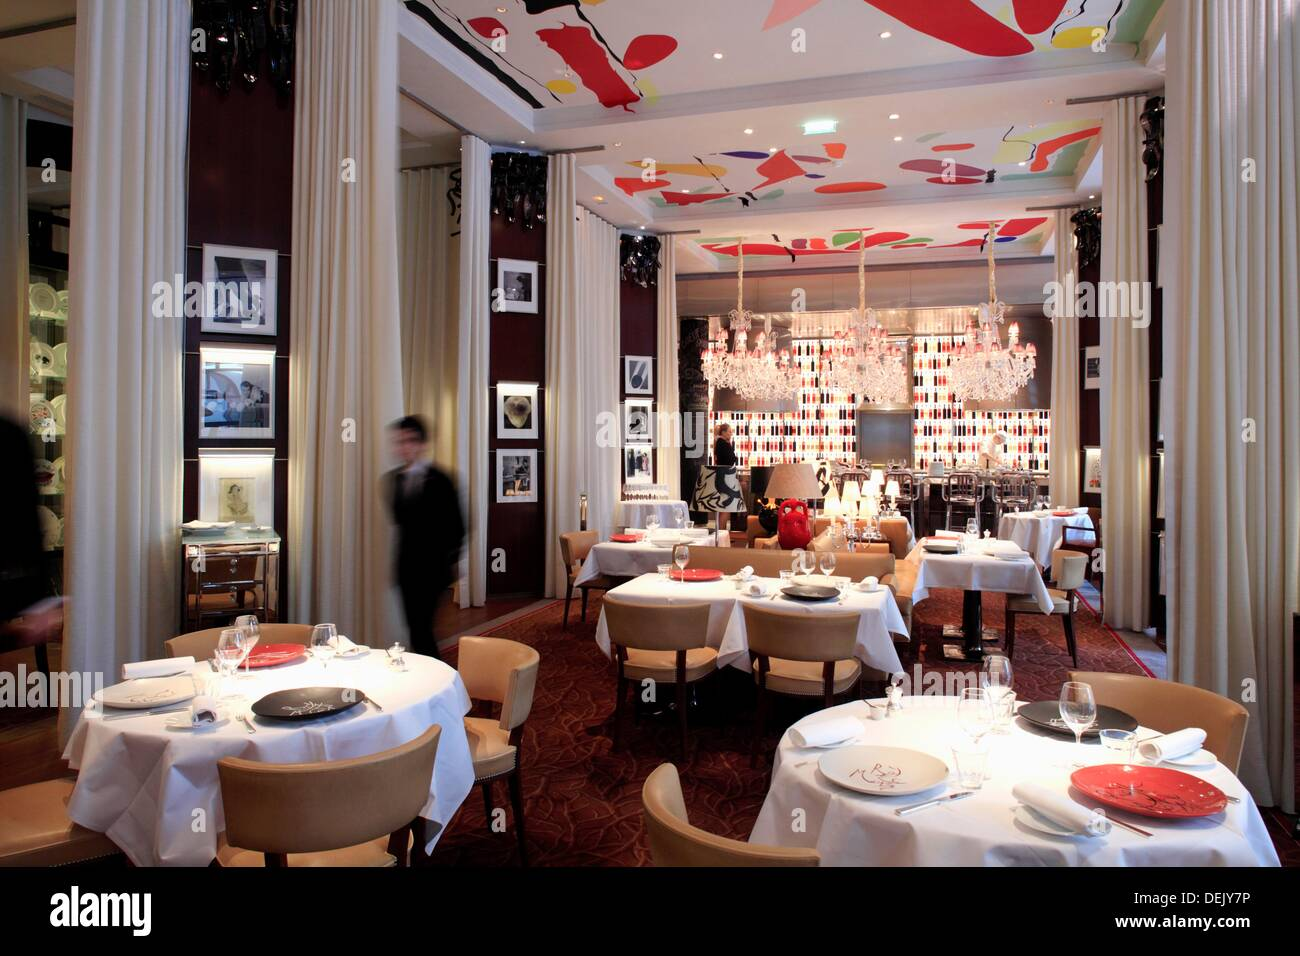 The Restaurant La Cuisine Designed By Philippe Starck In Hotel Le